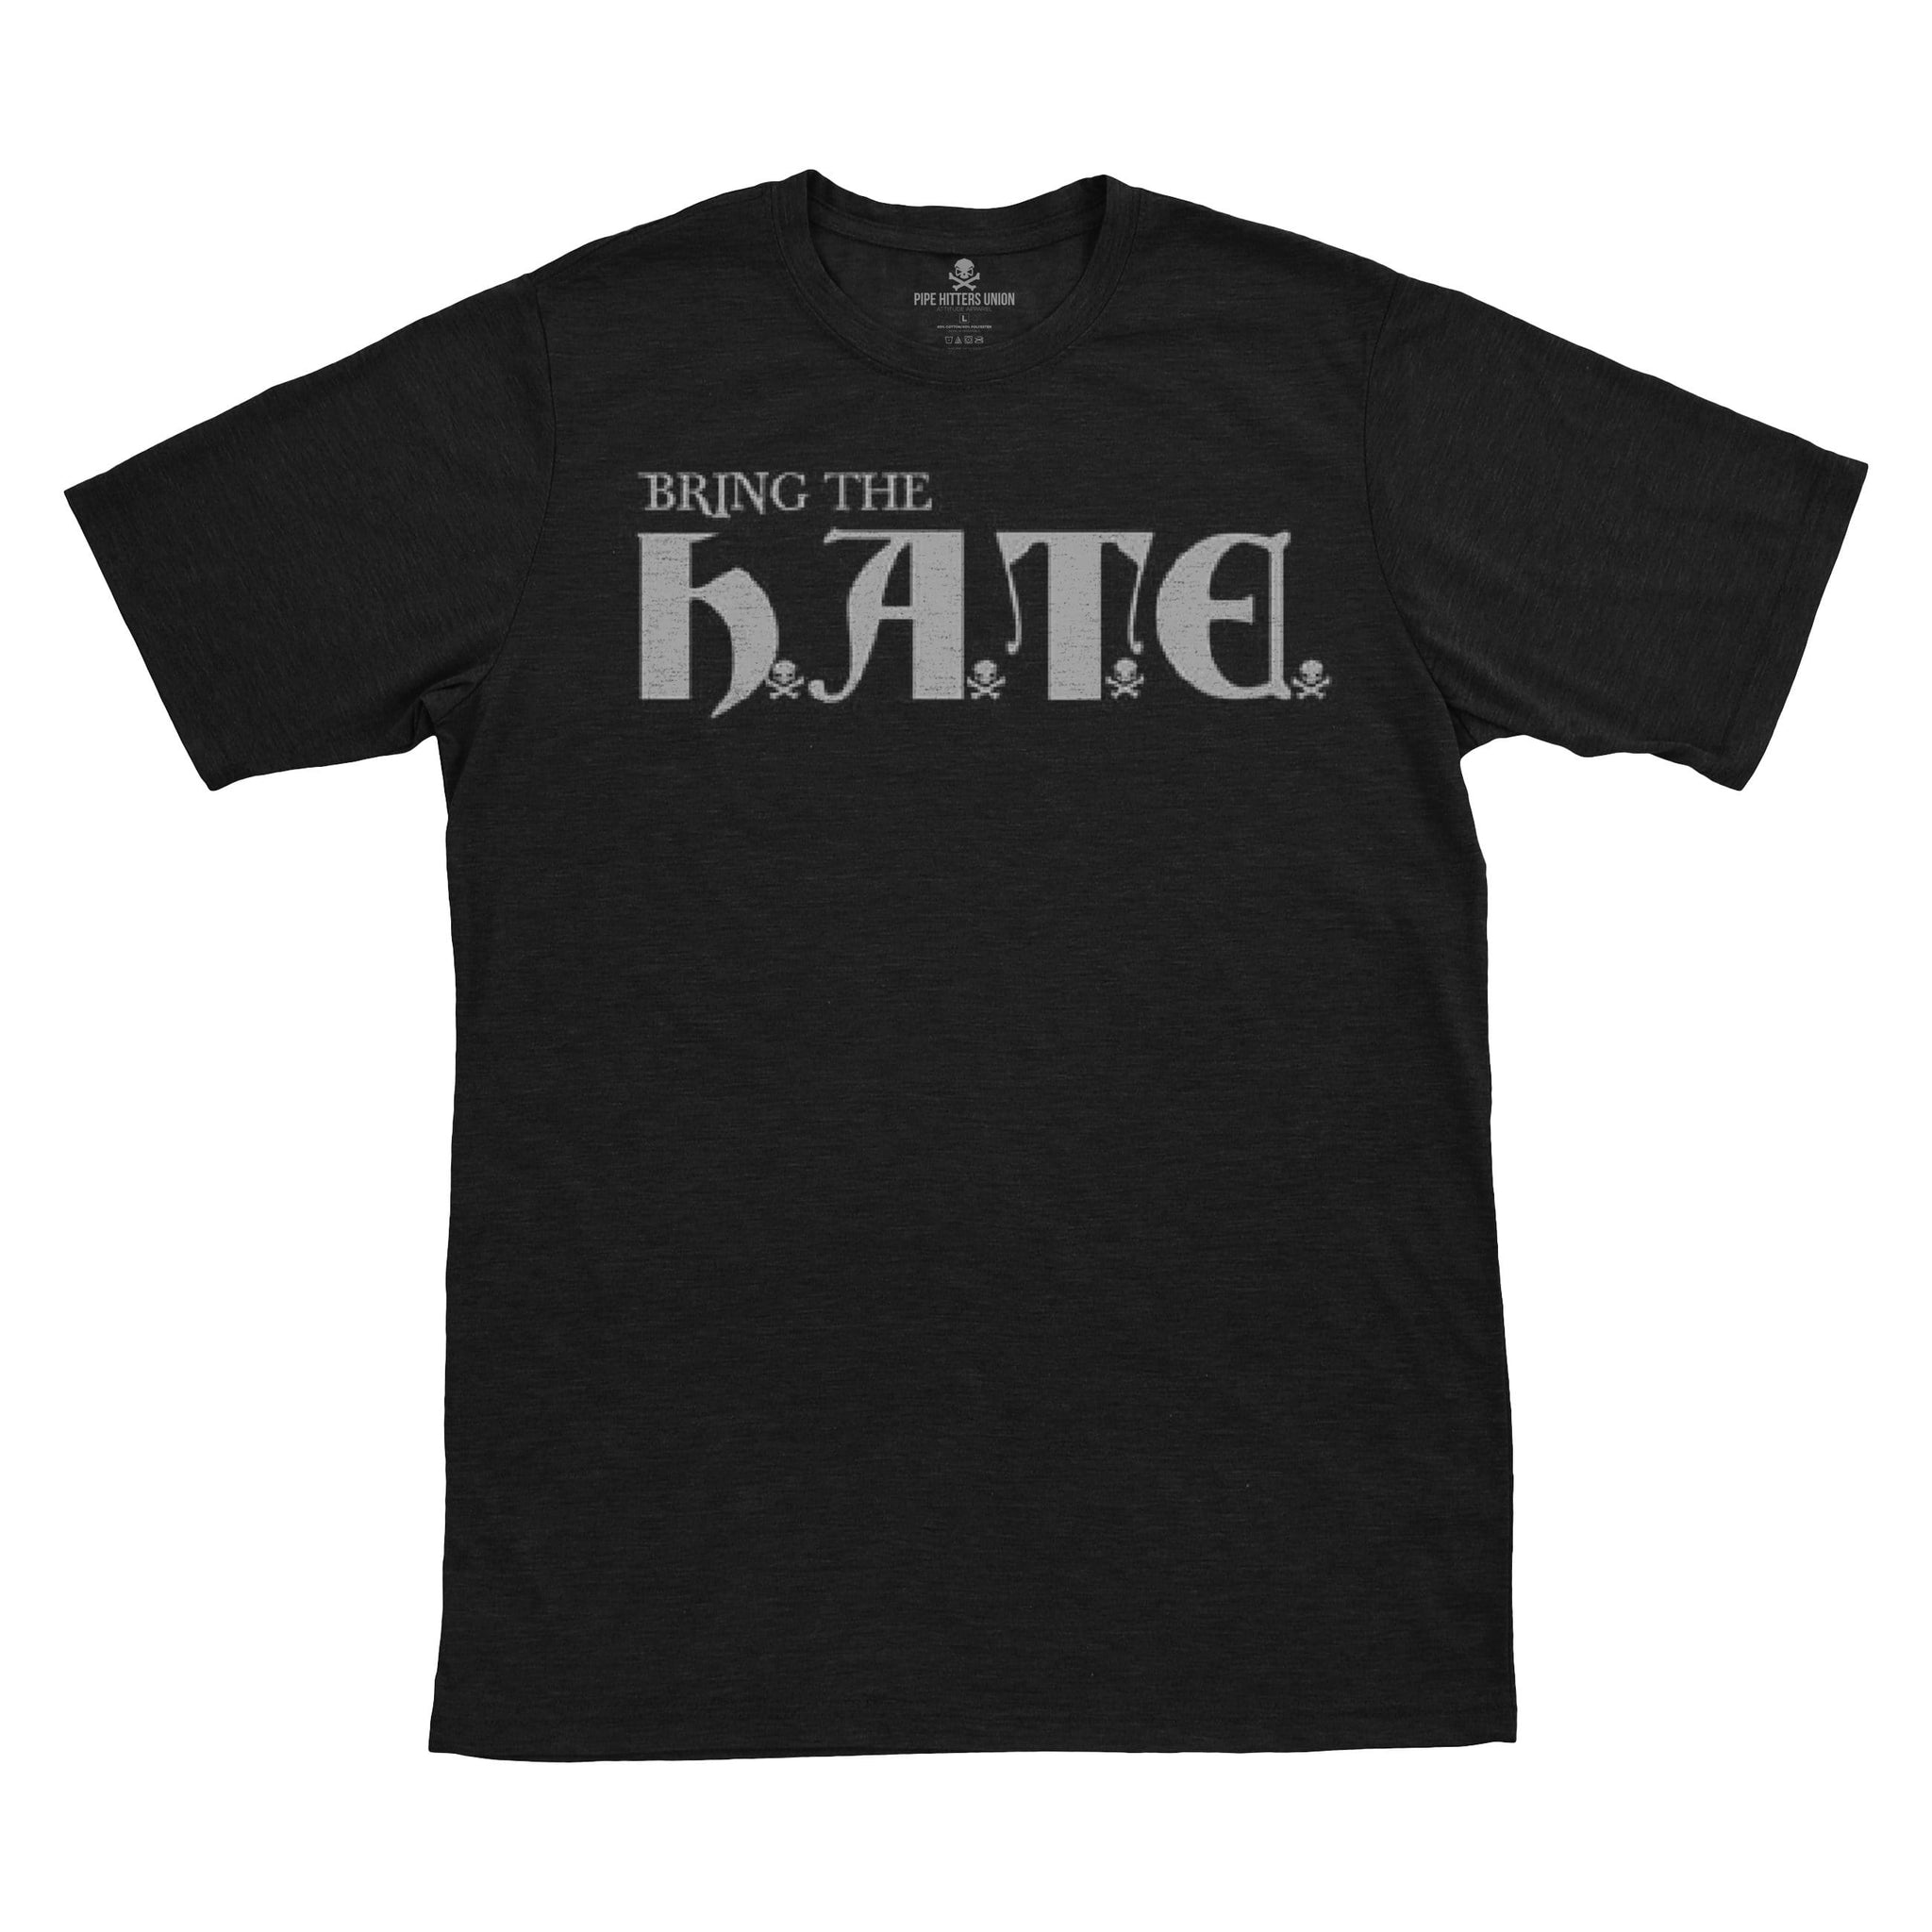 Bring The HATE - Black - T-Shirts - Pipe Hitters Union